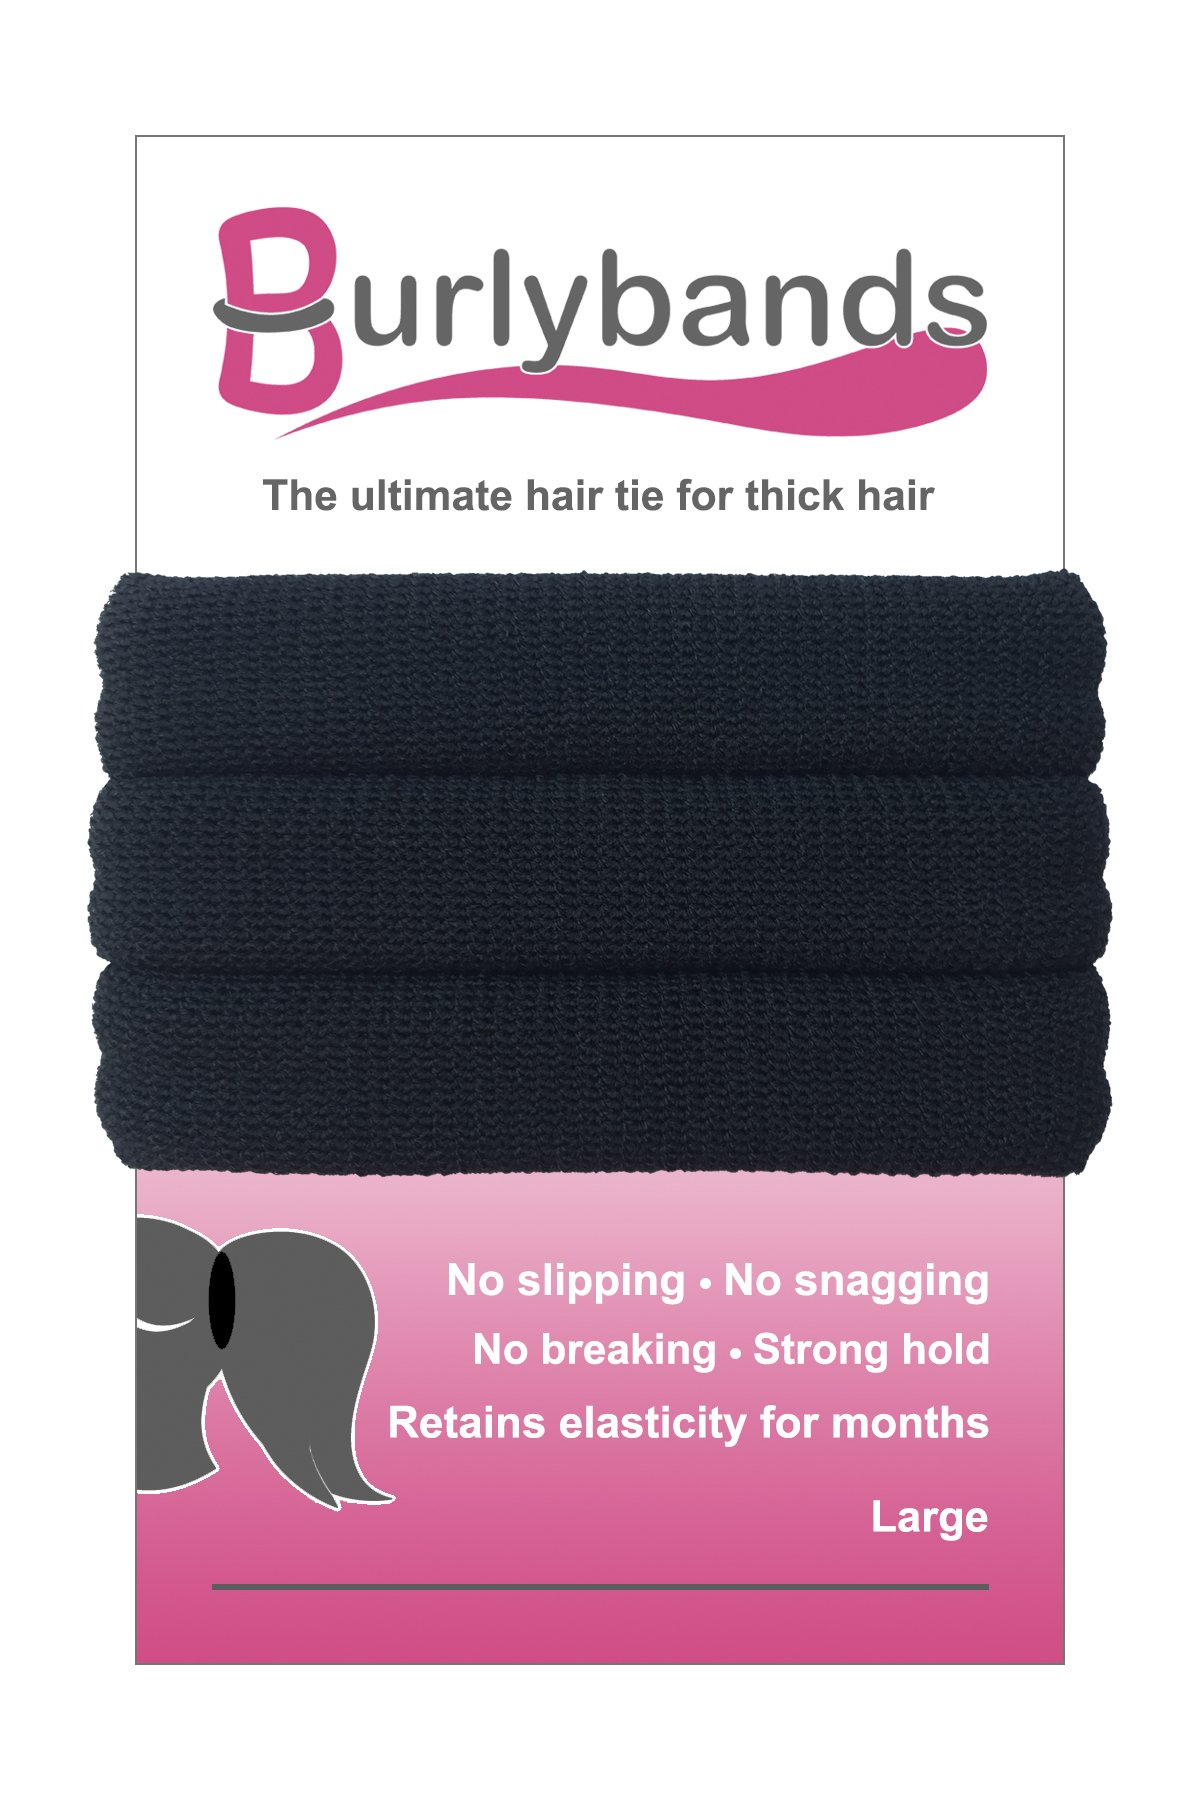 Burlybands - The Ultimate Hair Ties for Thick Heavy or Curly Hair. No Slipping Damage Breaking or Stretching Out. Seamless Ponytail Holders Scrunchies Sports Hair Ties for Thick Hair (Black) by Burlybands